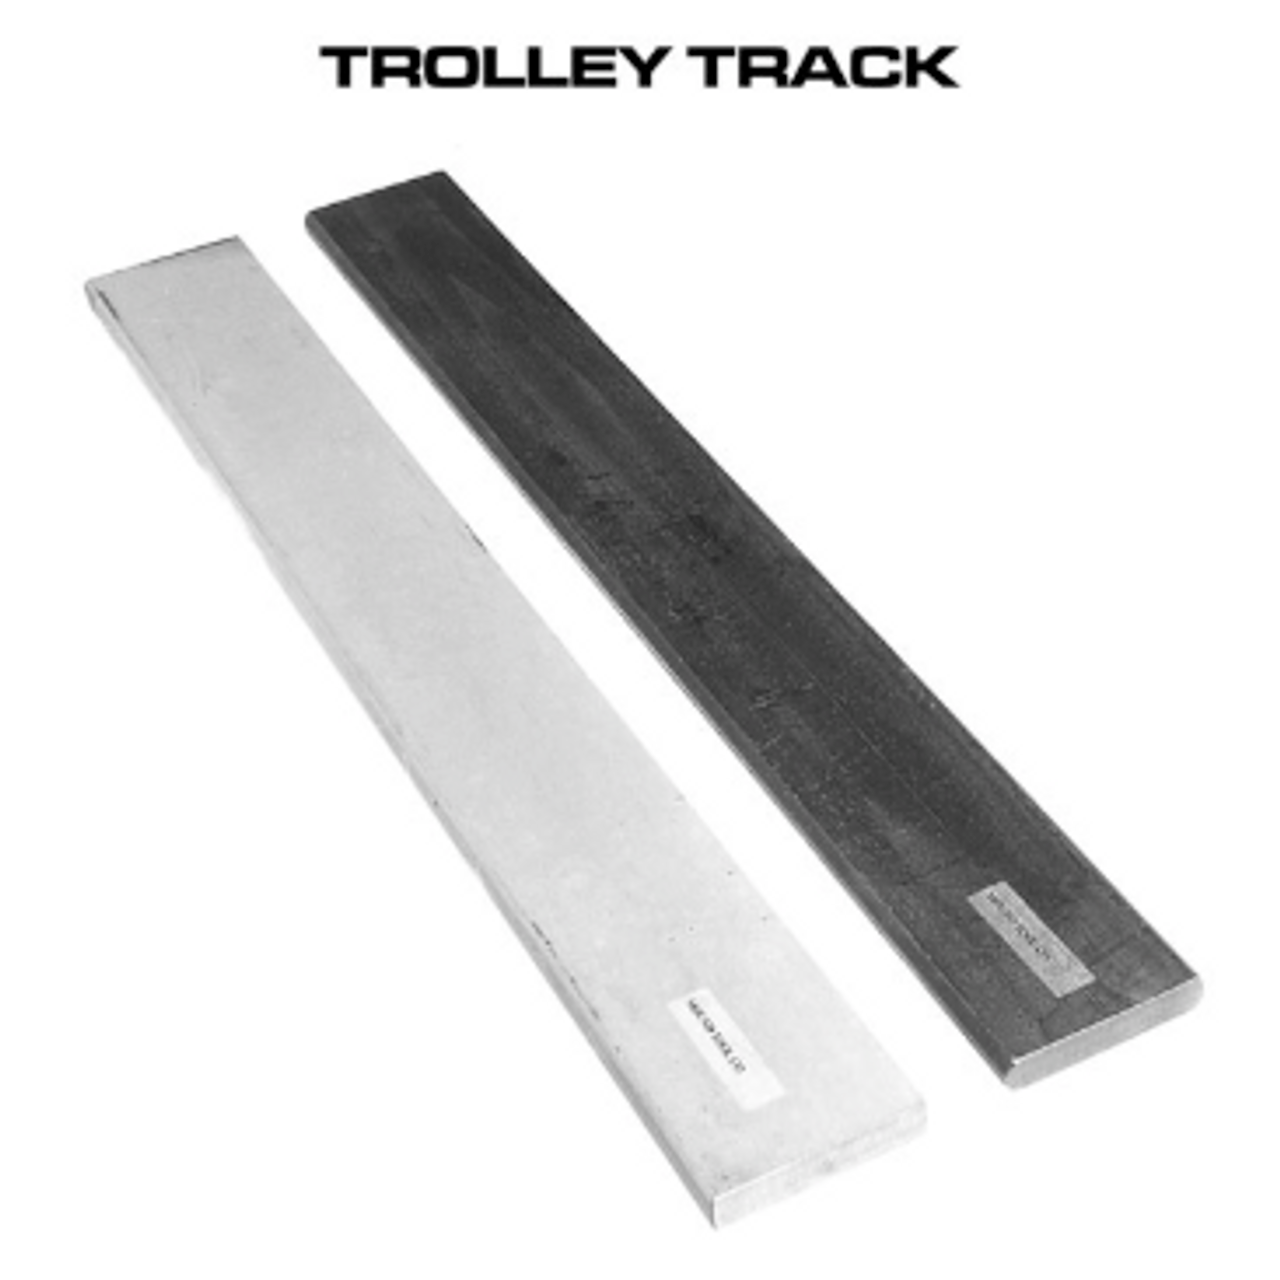 Trolley Tracks - Black Steel, Galvanized & Stainless Steel